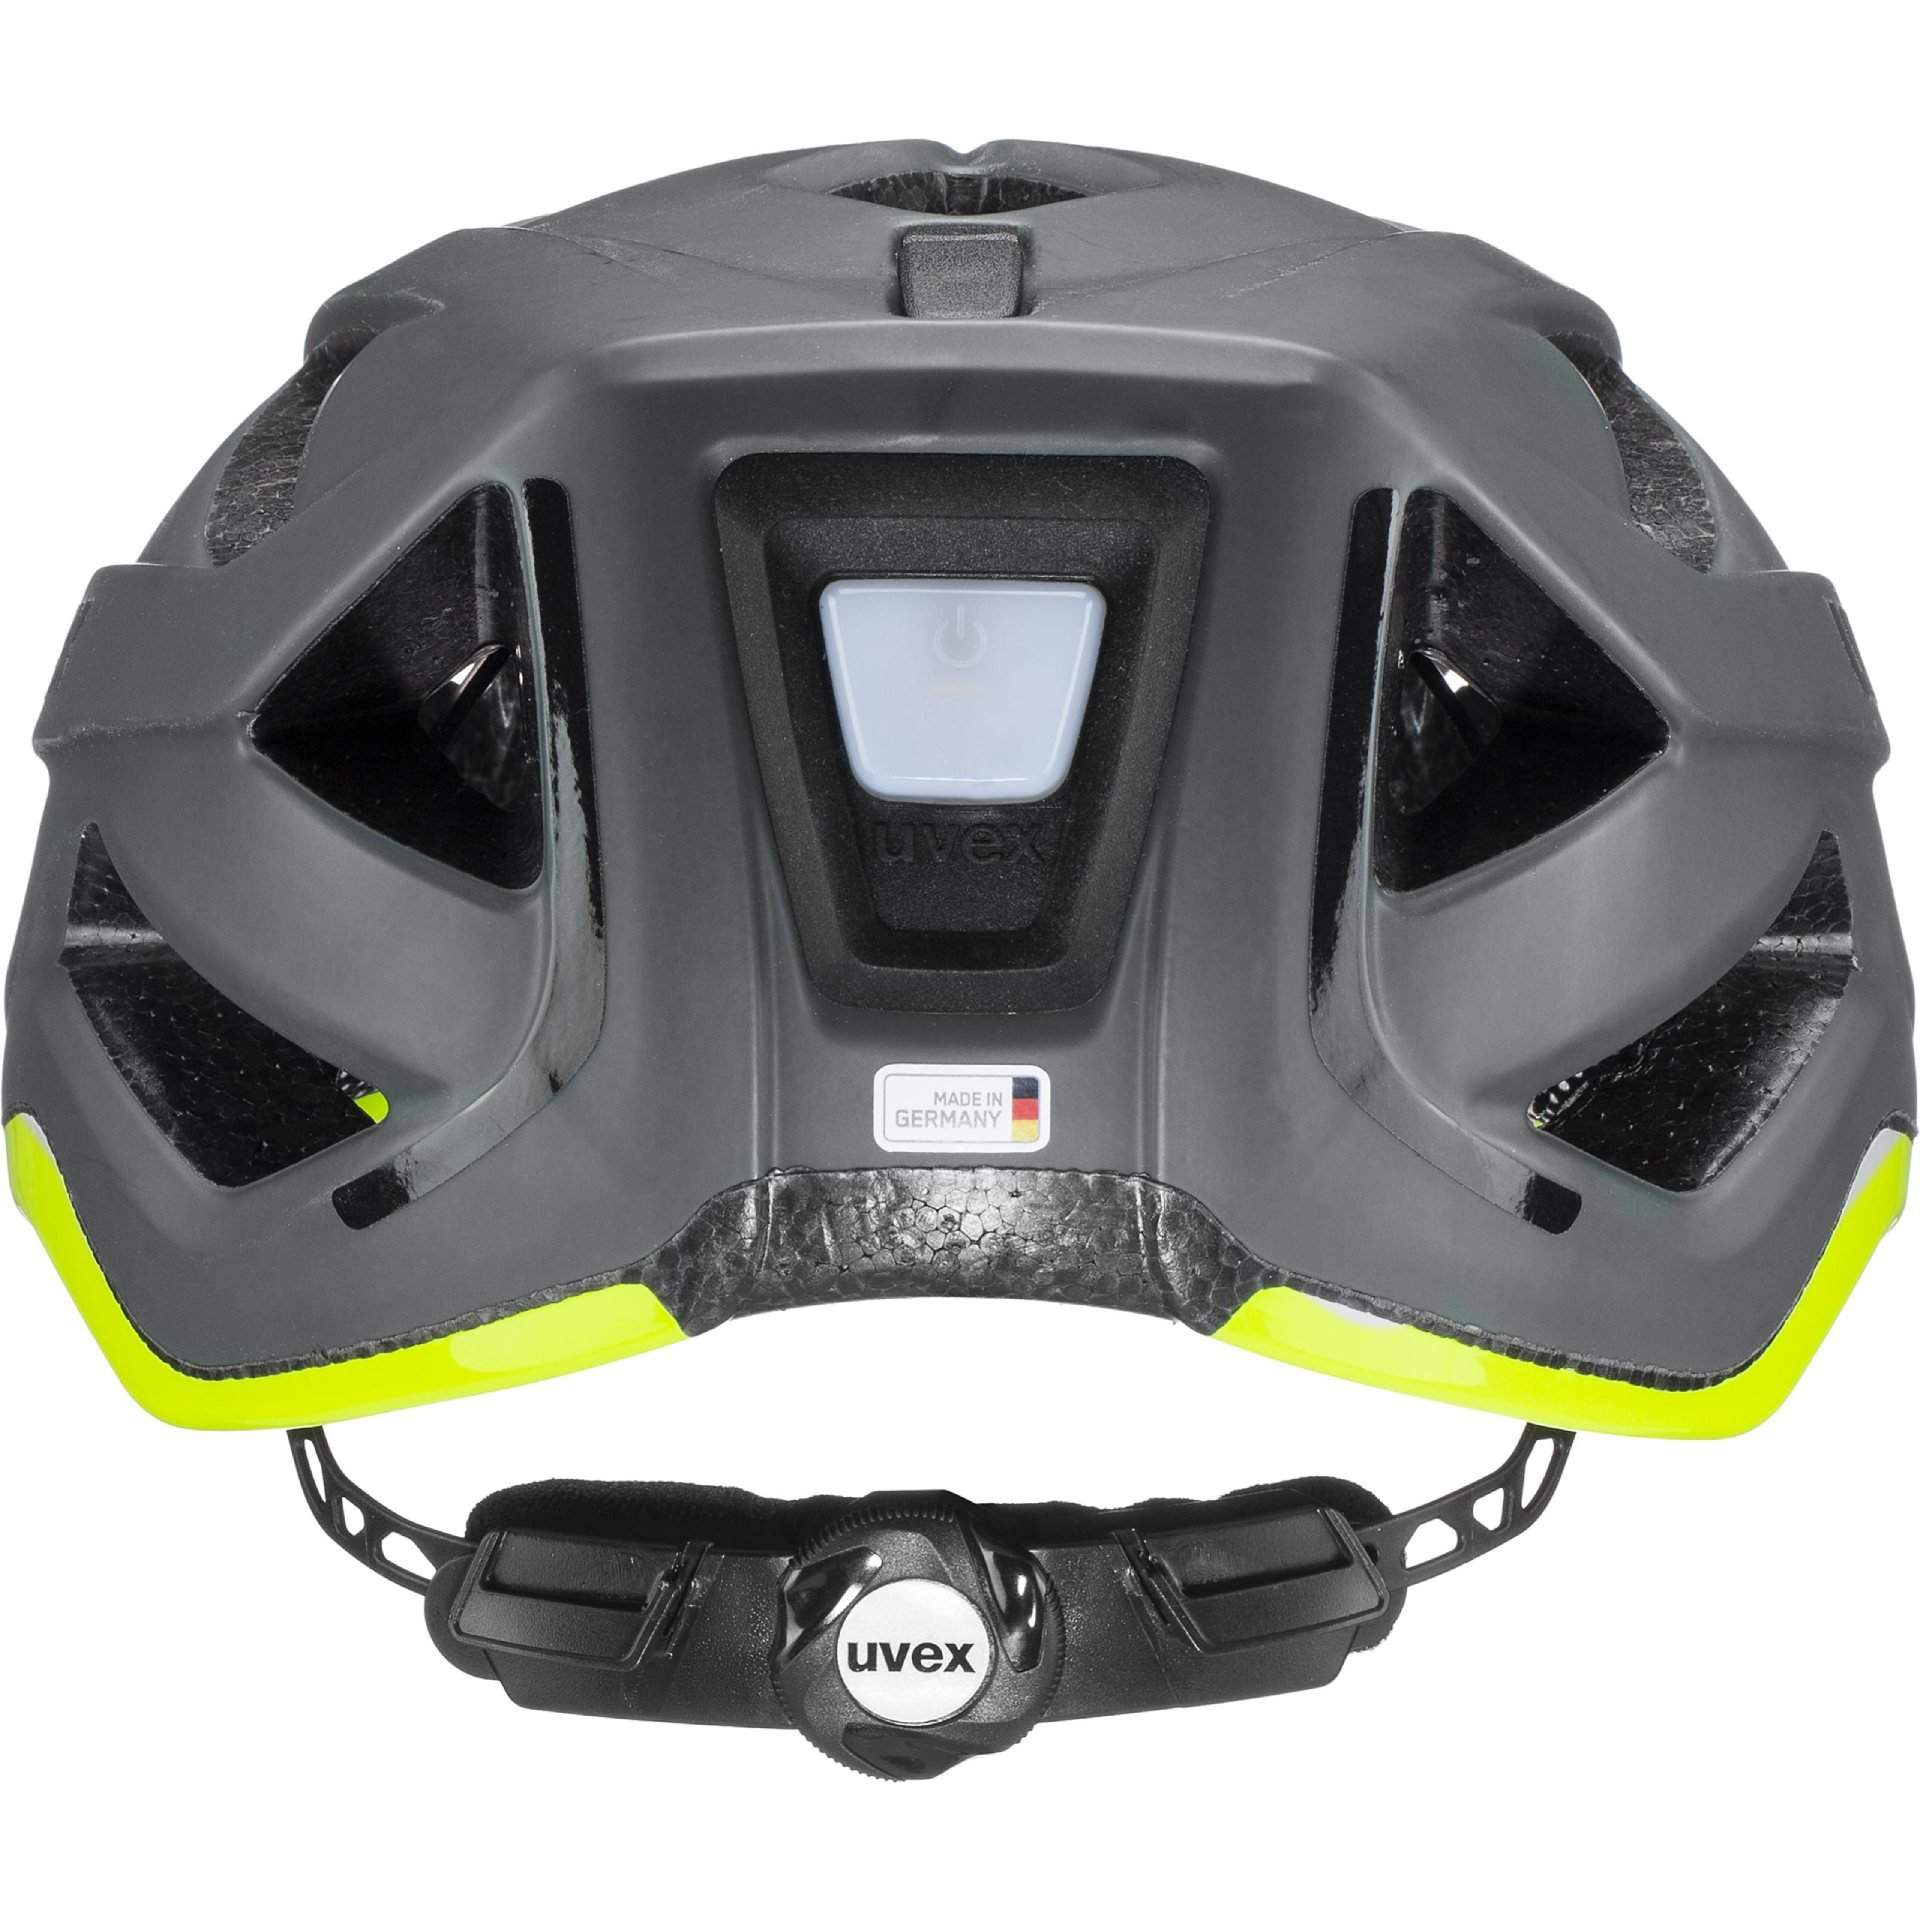 KASK ROWEROWY UVEX CITY ACTIVE 41|0|428|08 ANTHRAZIT|LIME MAT Z TYŁU